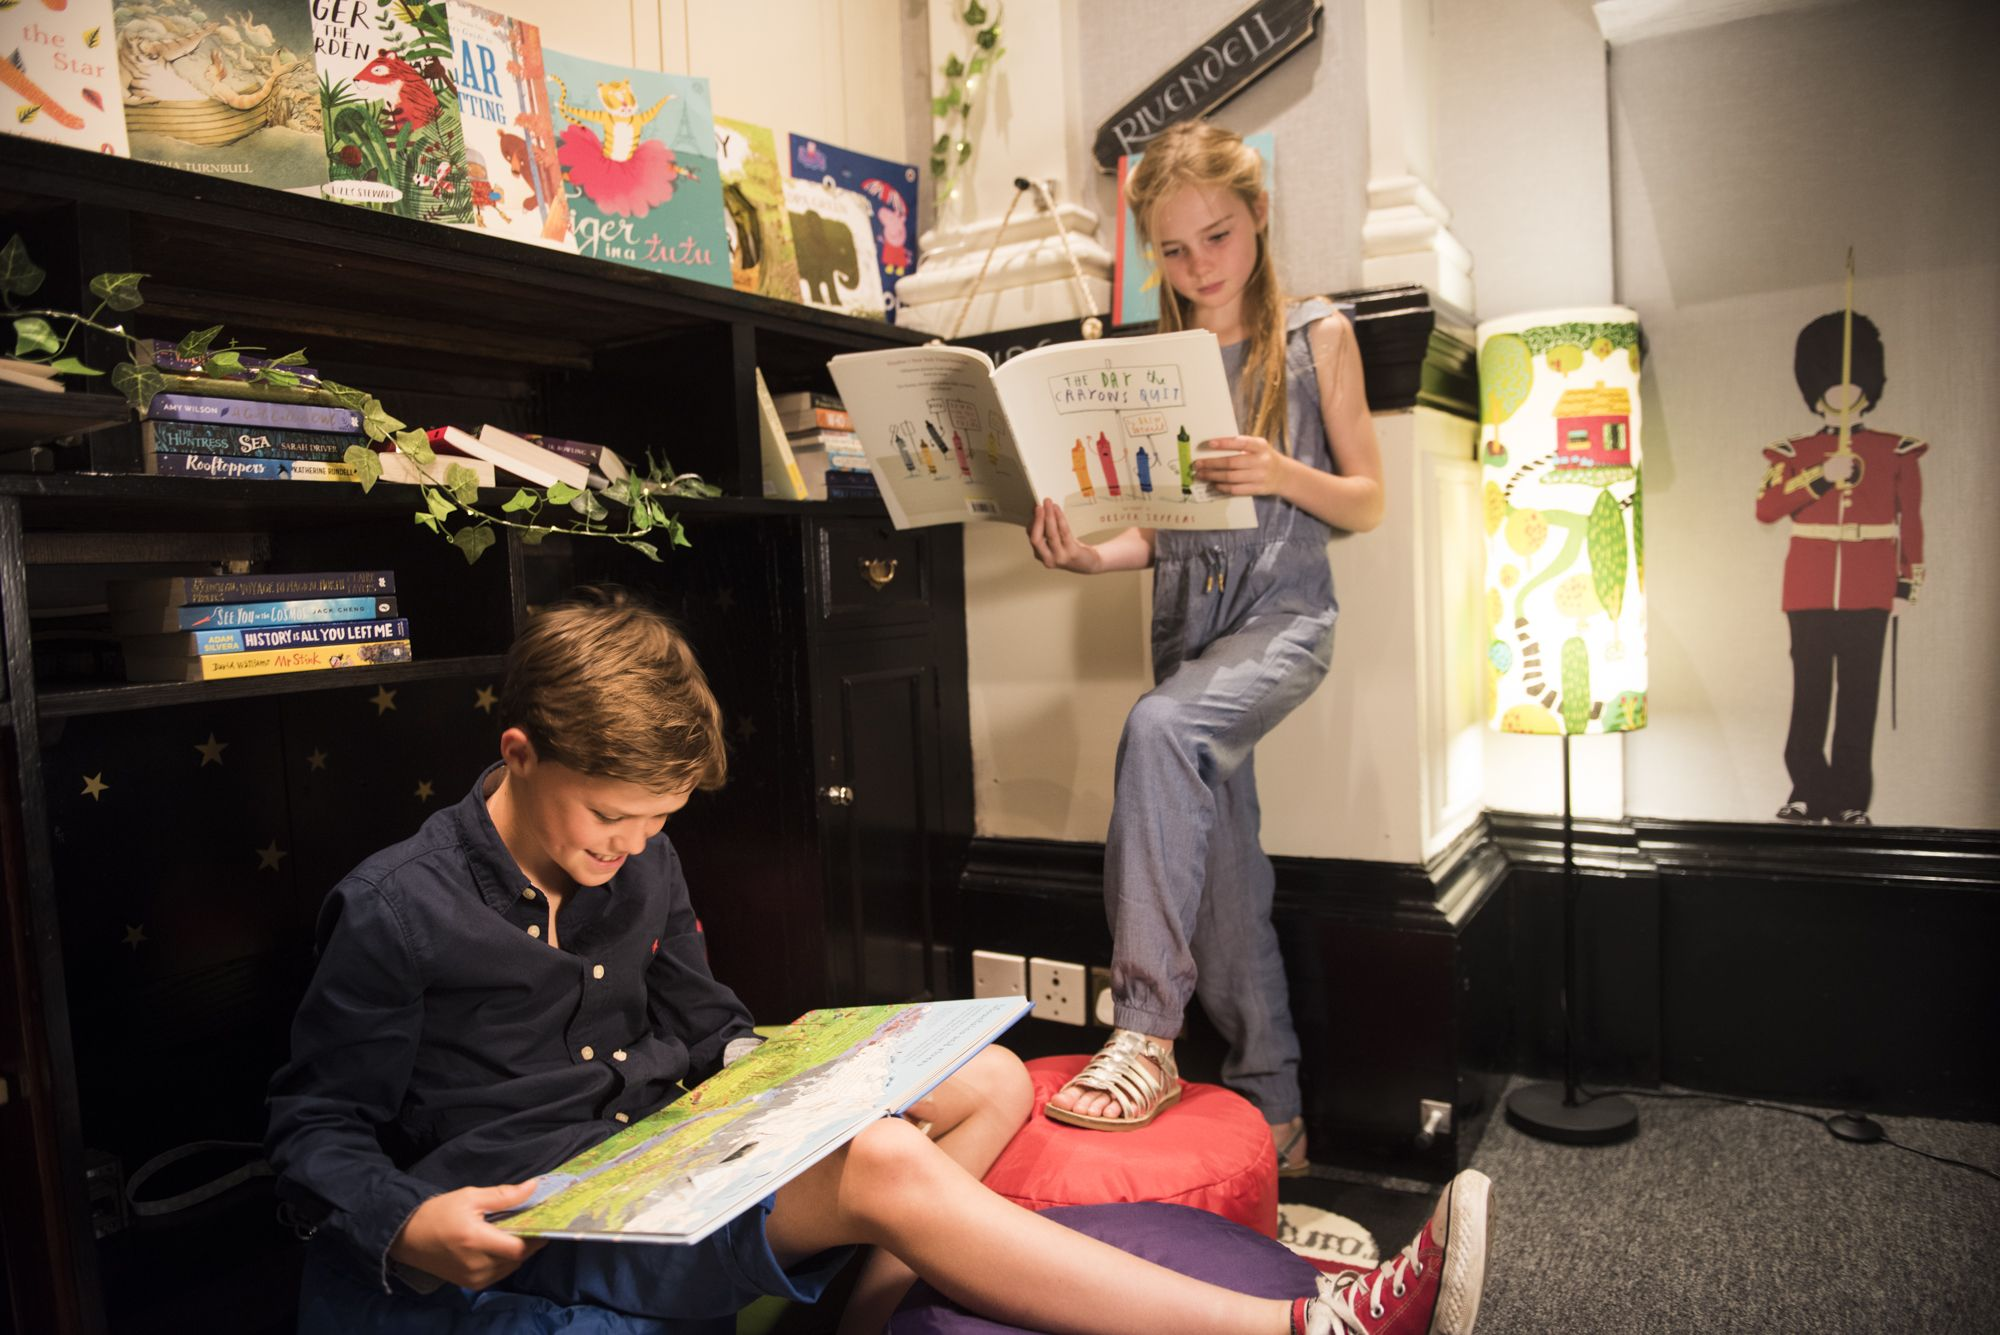 Kids book den in partnership with Waterstones